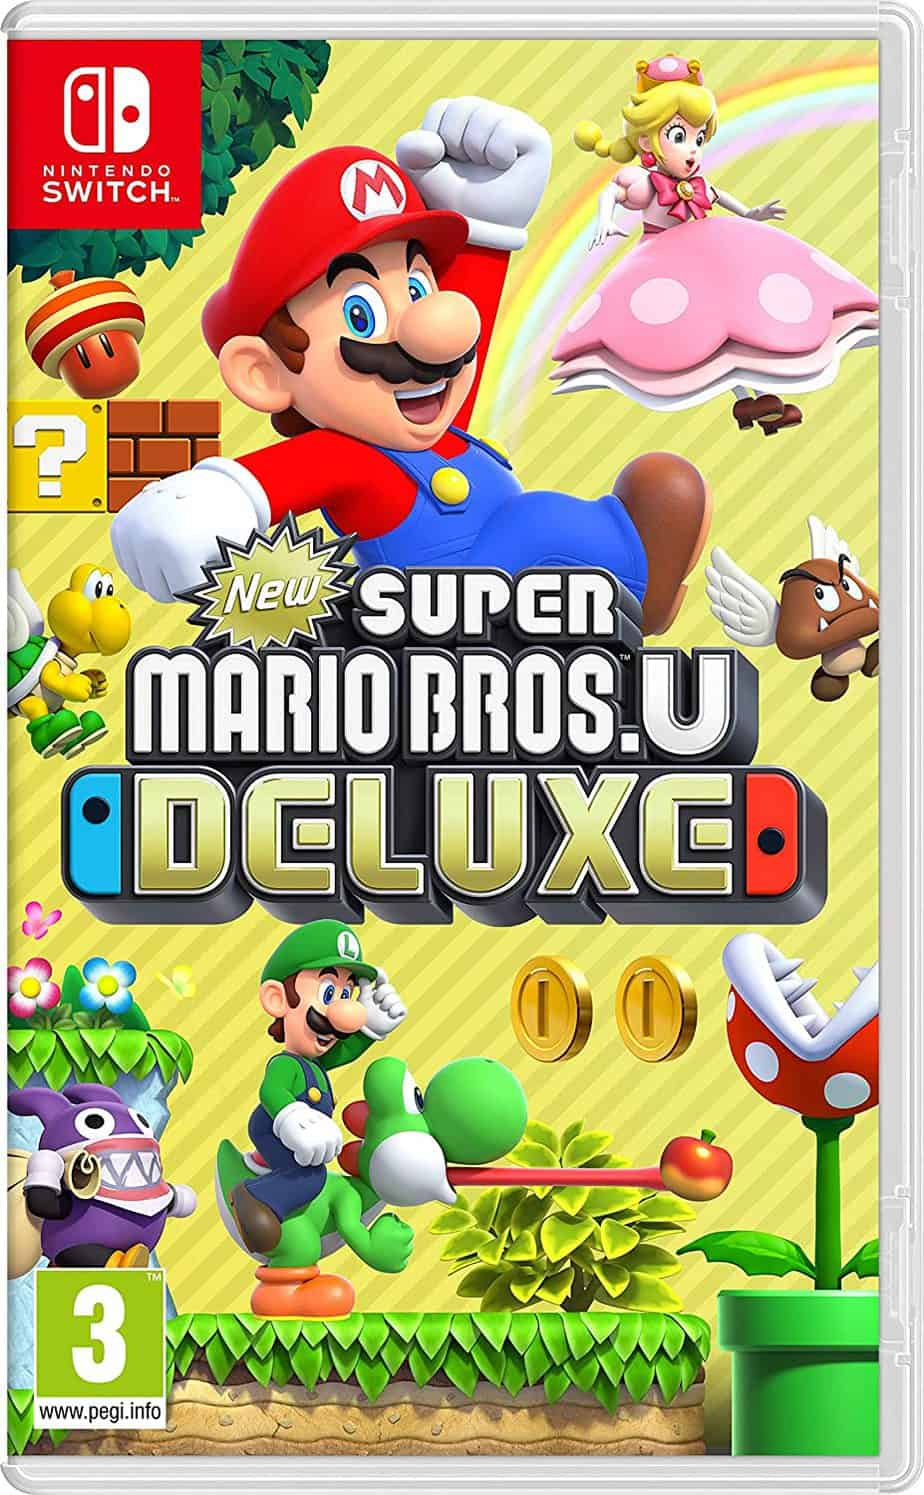 Best Mario multiplayer games - New Super Mario Bros U Deluxe